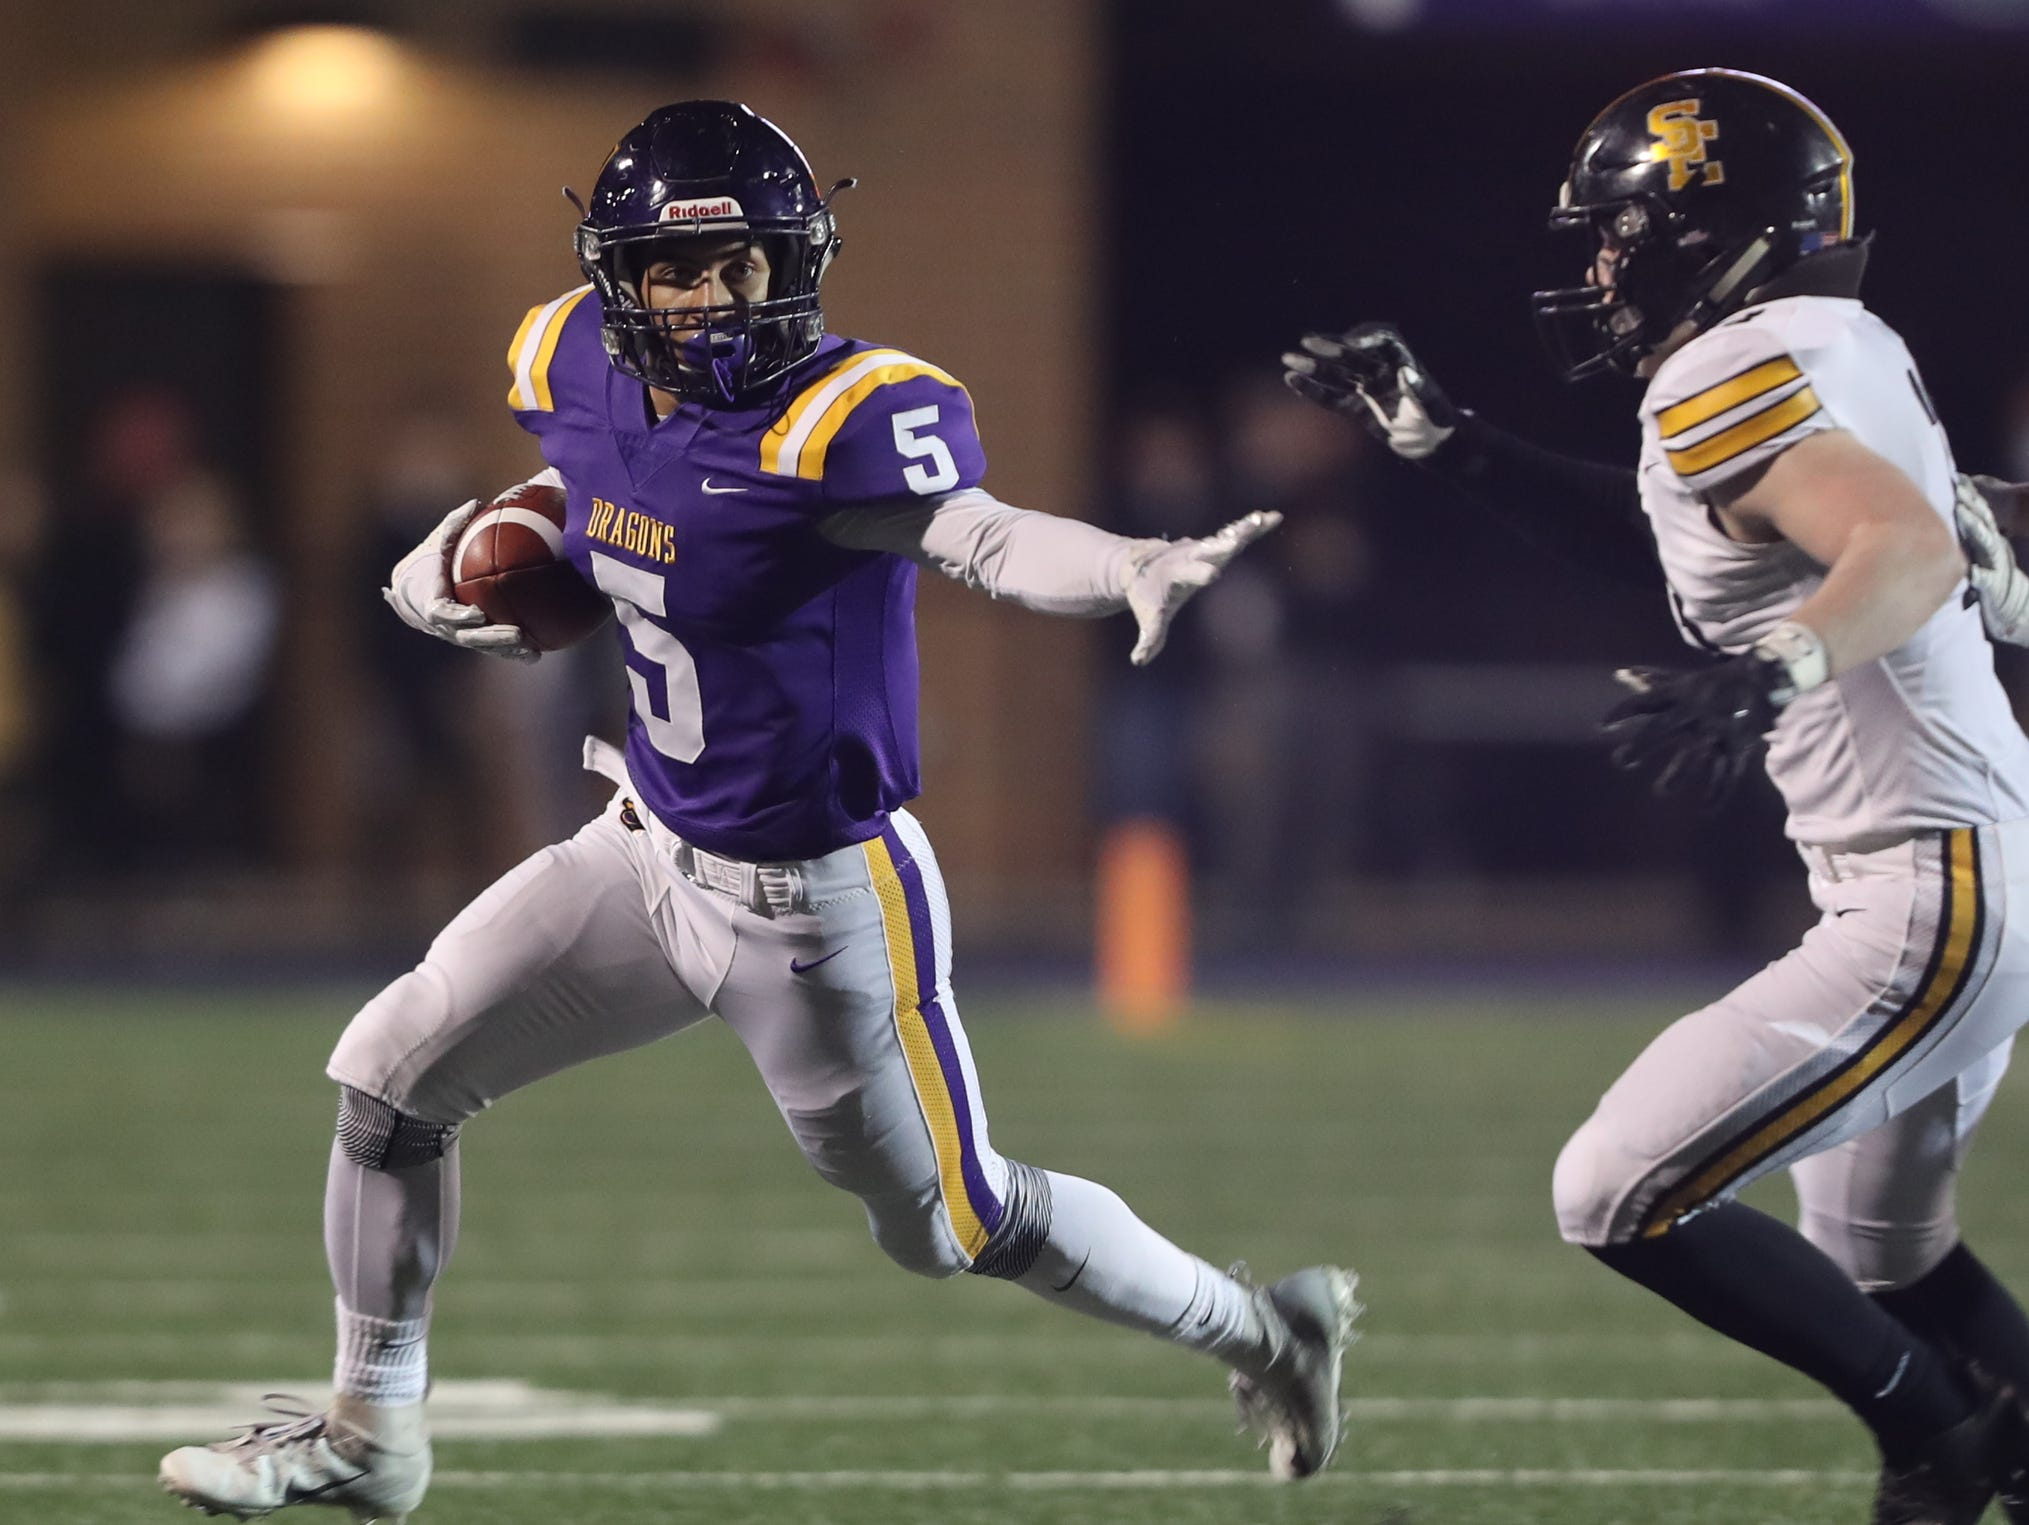 Nov 2, 2018; Johnston, IA, USA; Johnston Dragons Anthony Coleman (5) runs the football against the Southeast Polk Rams at Johnston Stadium. The Rams beat the Dragons 21-7.